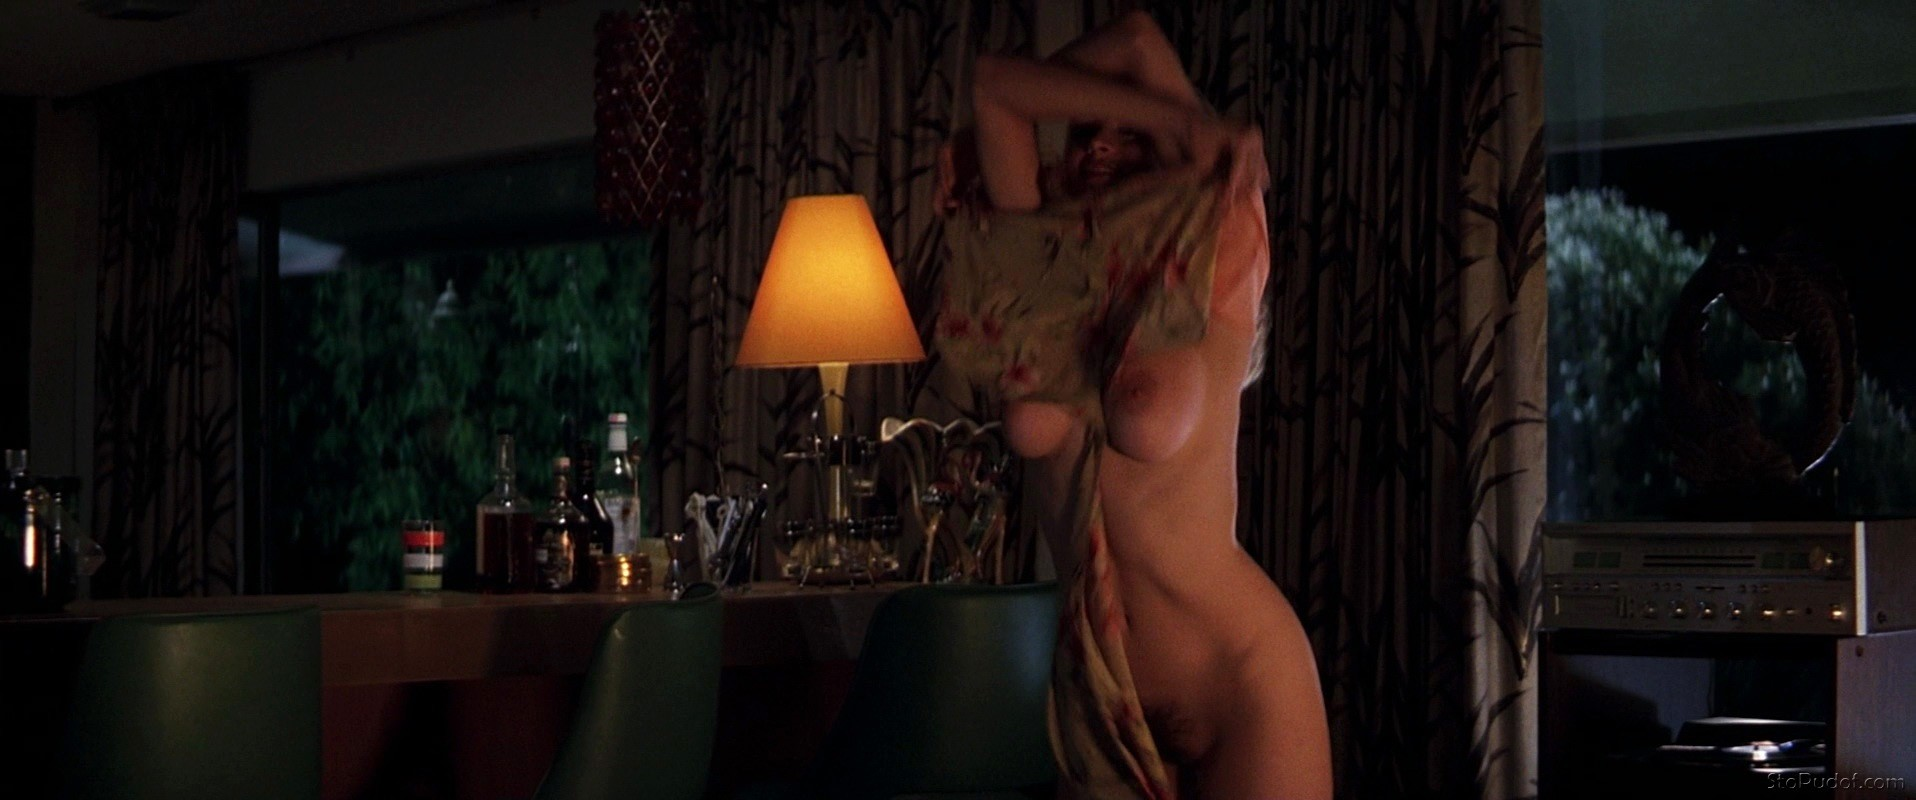 view naked photos of Heather Graham - UkPhotoSafari